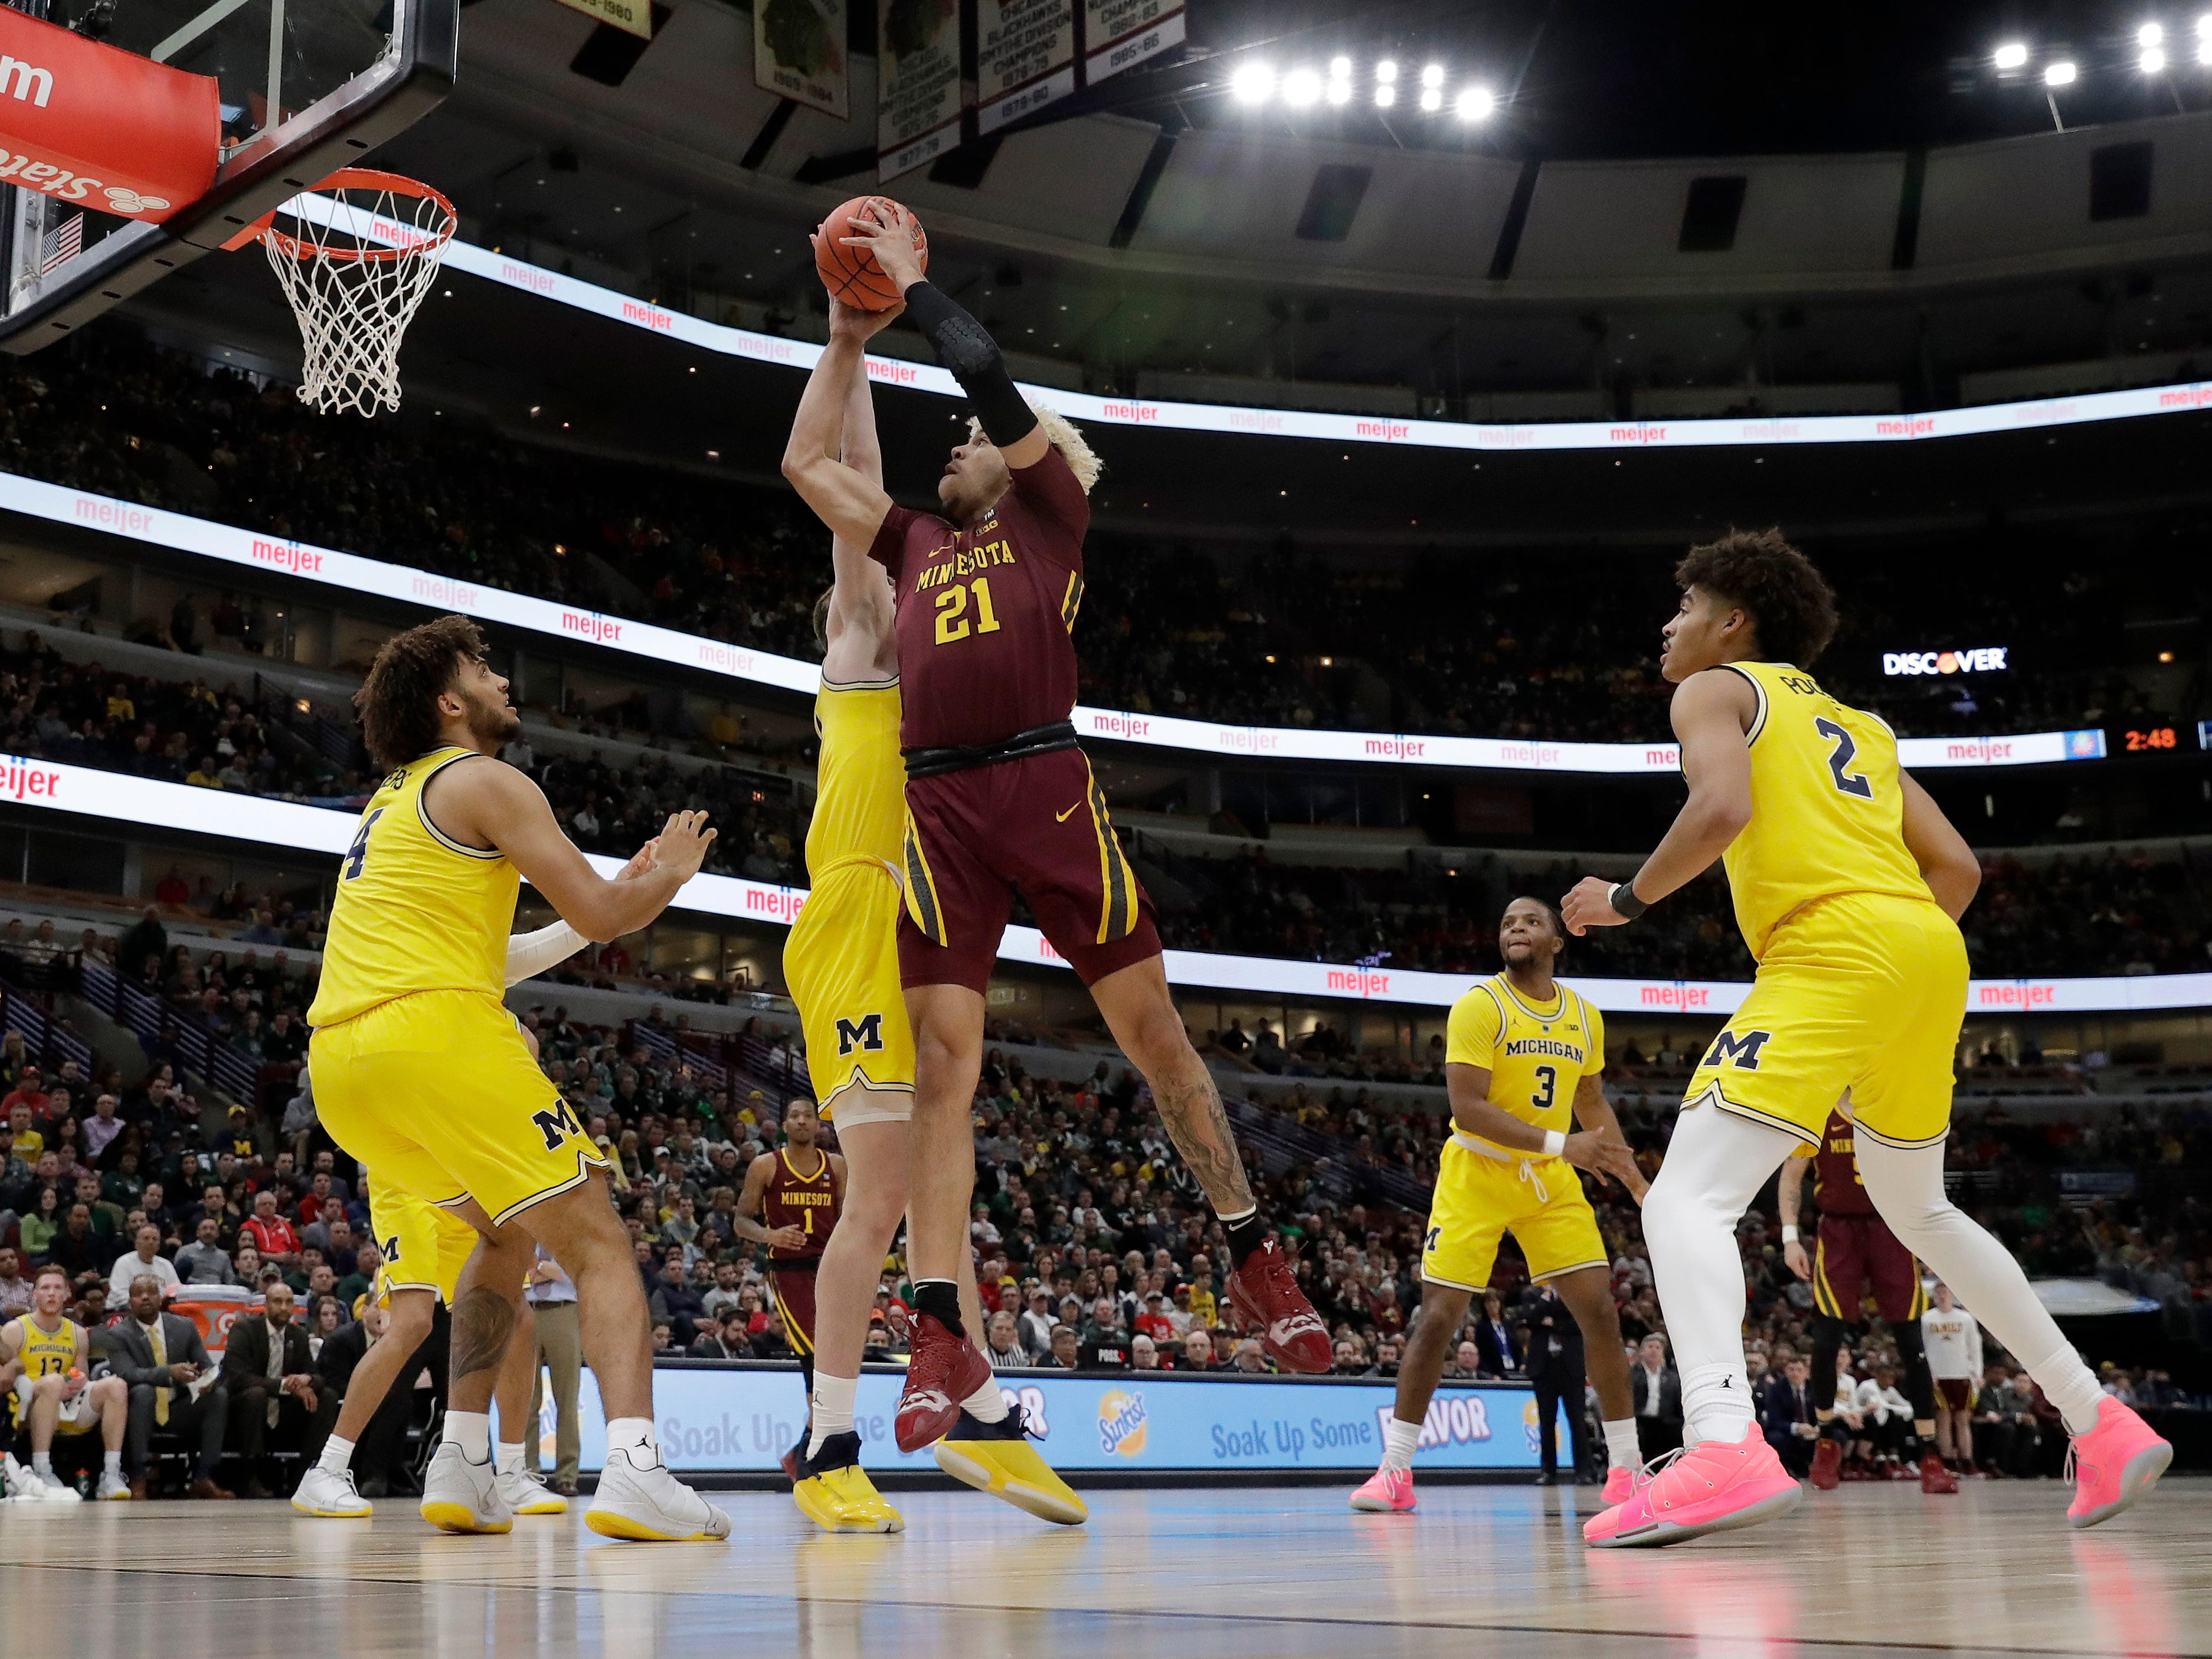 Minnesota's Jarvis Omersa takes a shot against Michigan's Colin Castleton during the first half.